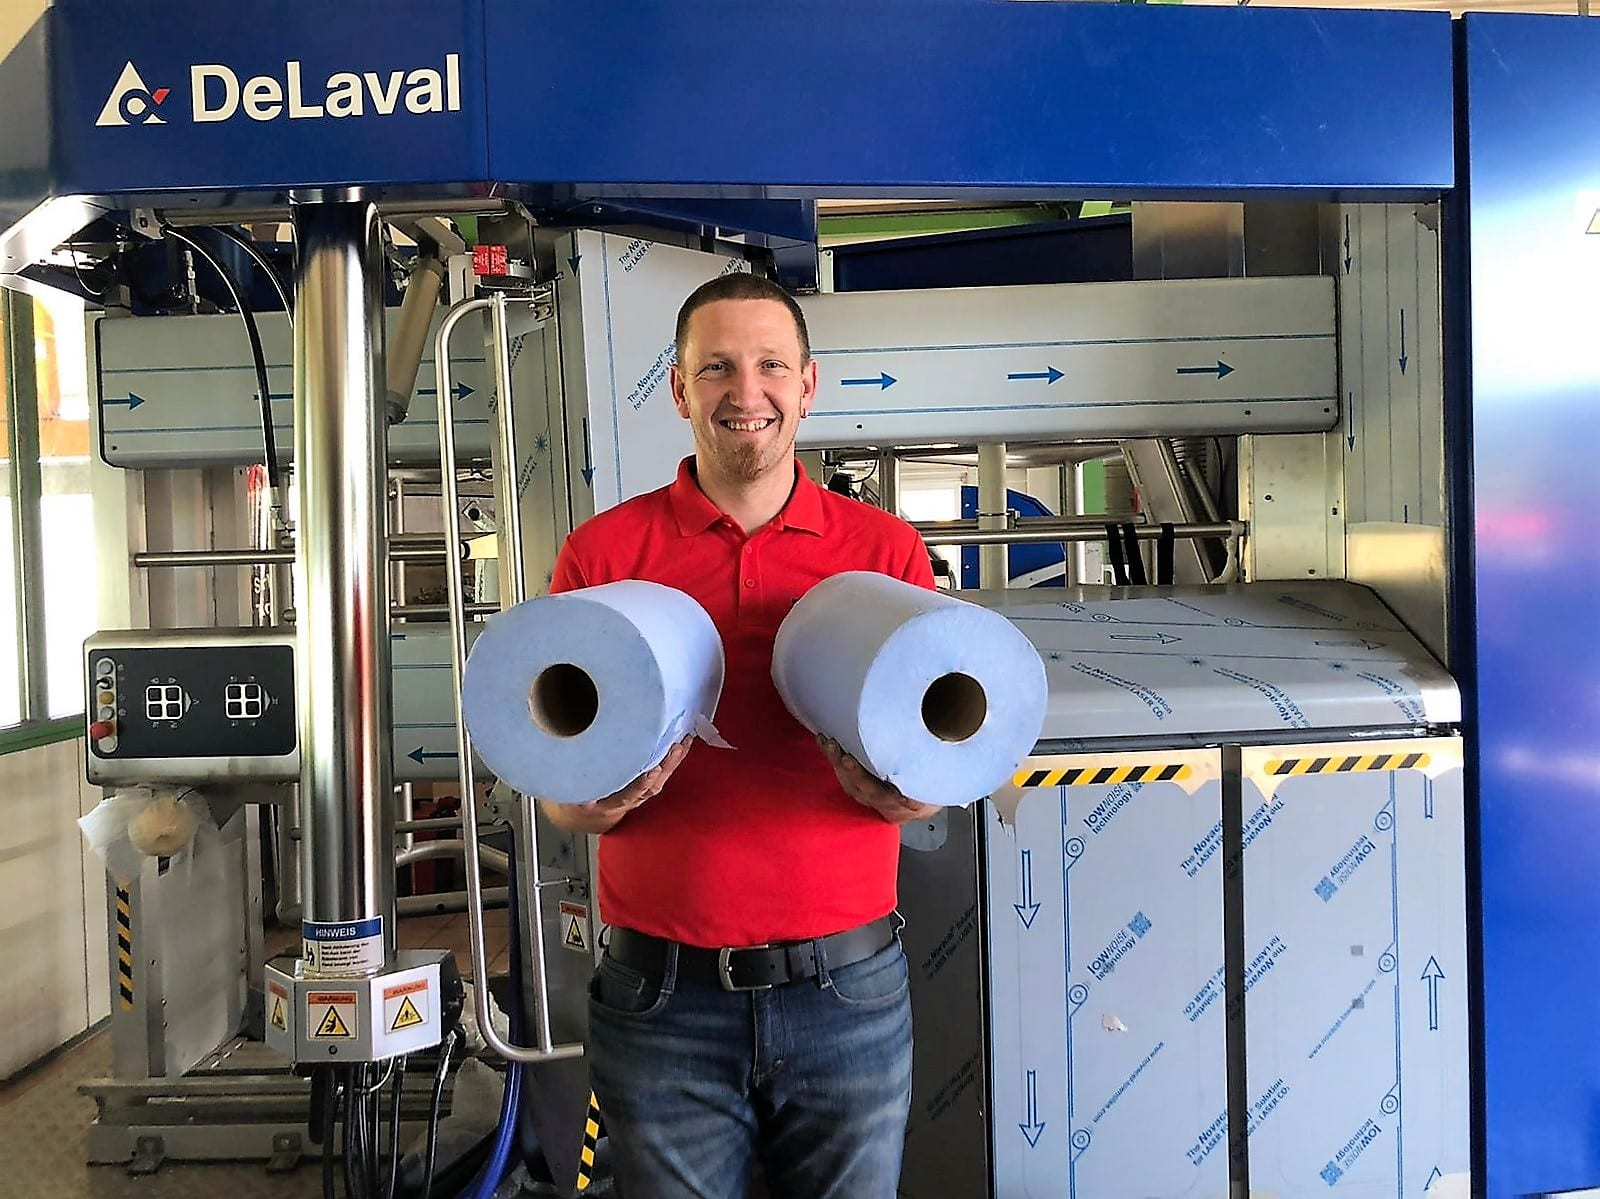 DeLaval Quartalsaktion 01.07. - 30.09.2020